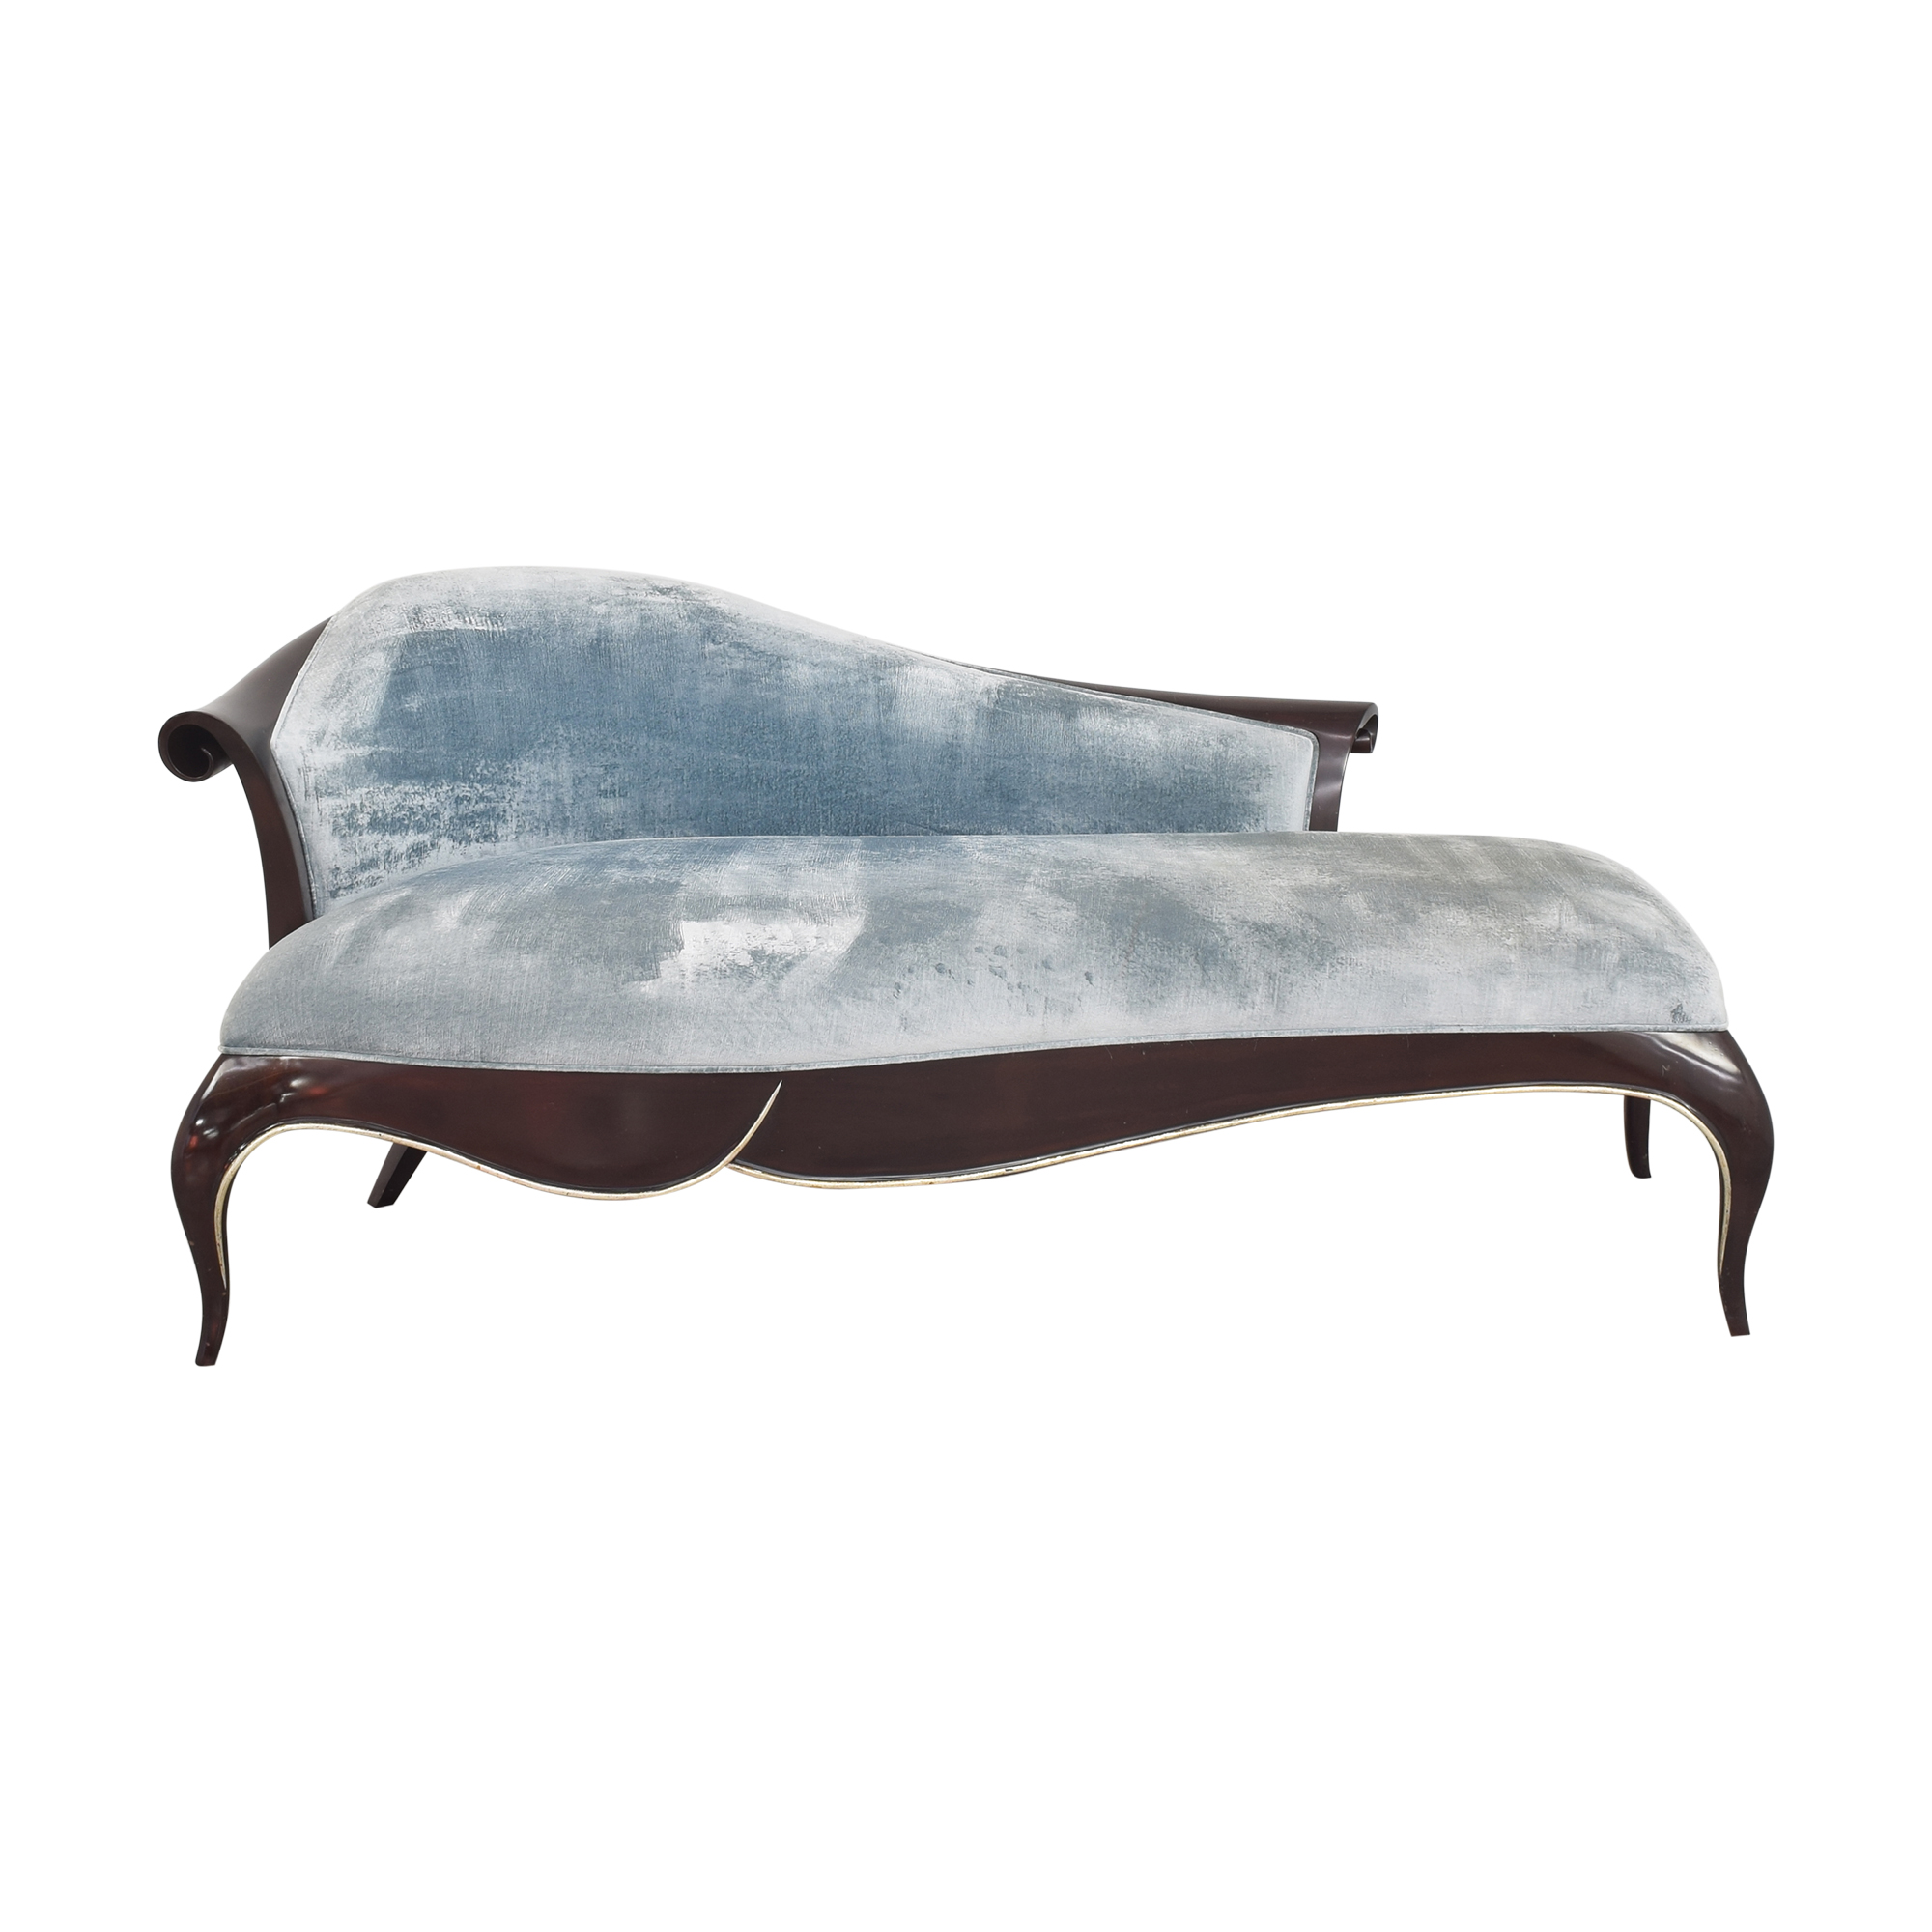 Christopher Guy Christopher Guy Sofia Chaise Lounge for sale